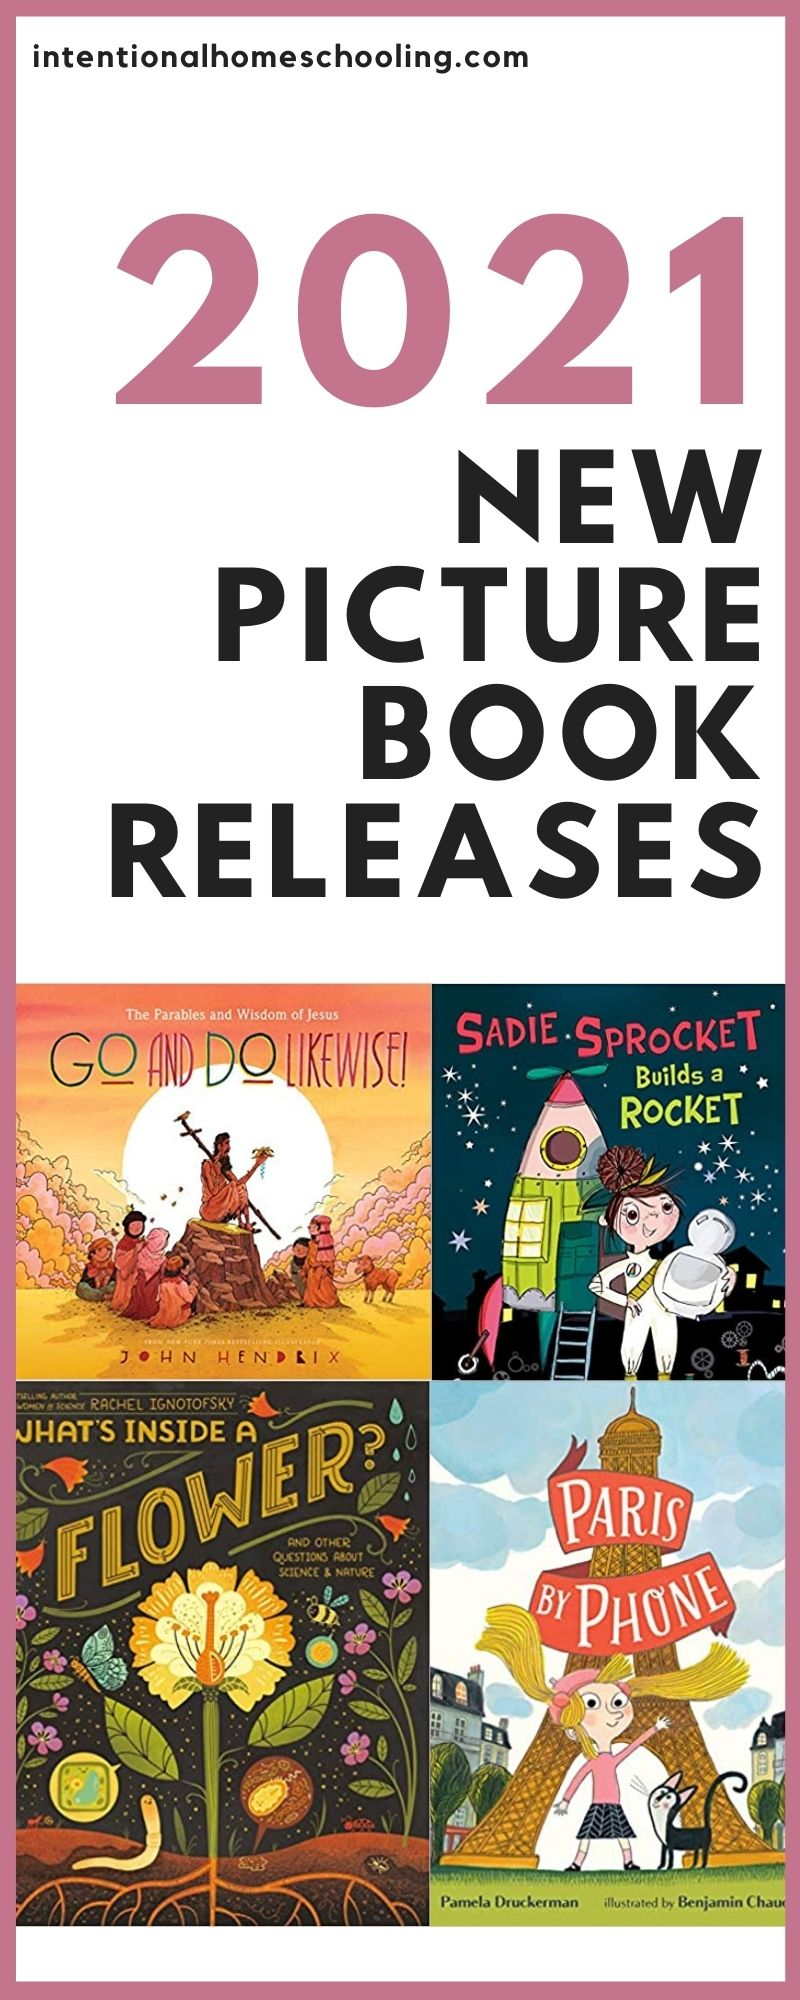 2021 New Picture Book Releases - great sounding picture books that are being released February 2021